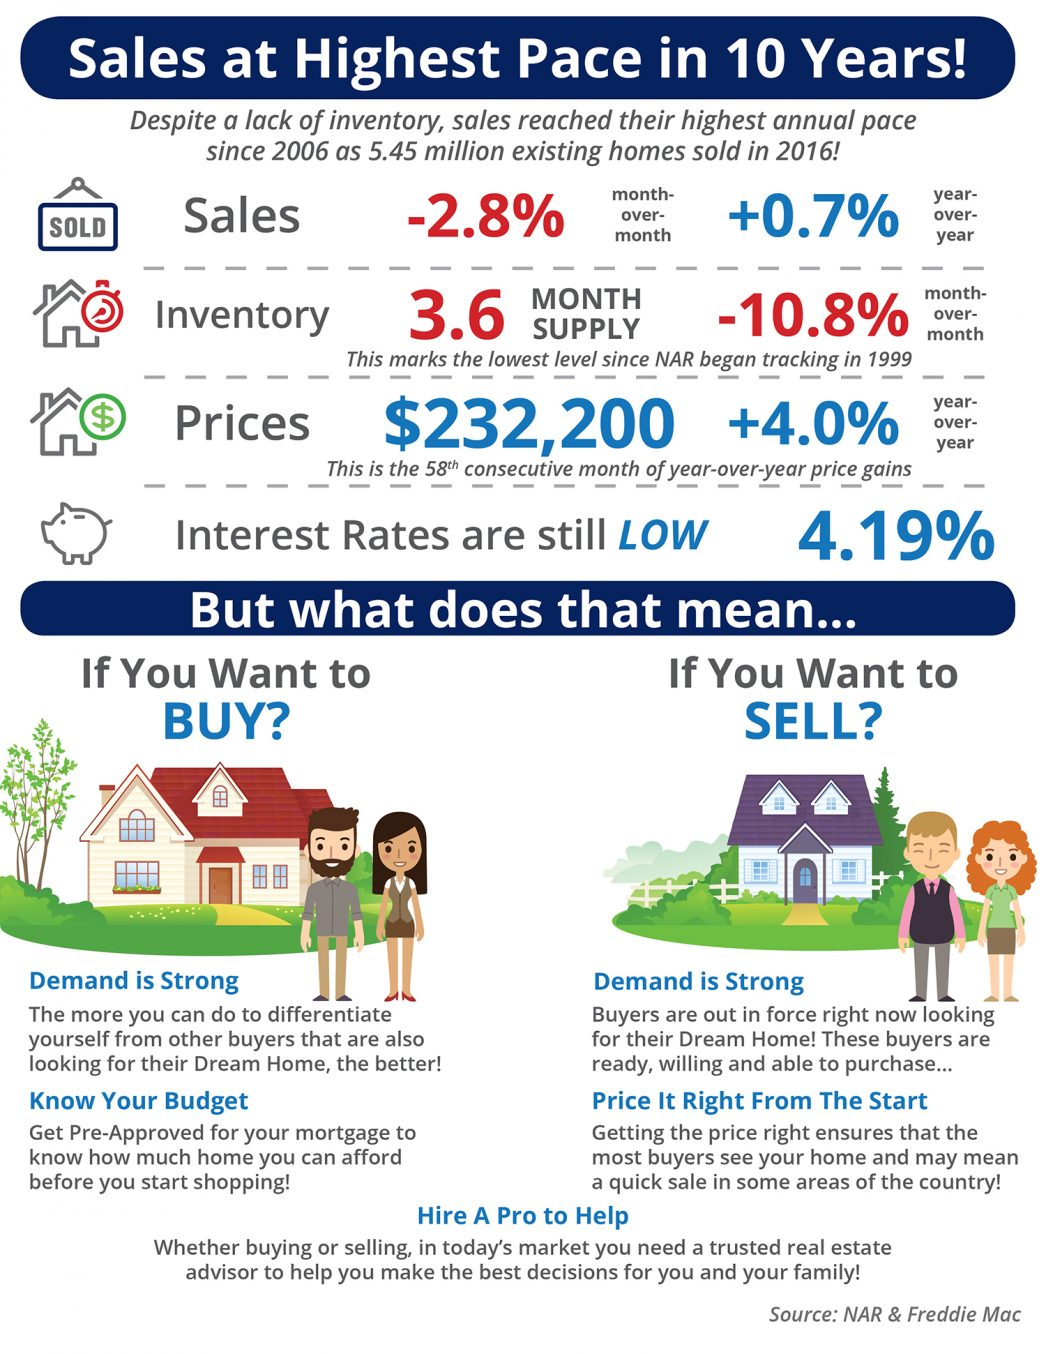 Sales at Highest Pace in 10 Years! [INFOGRAPHIC] | MyKCM